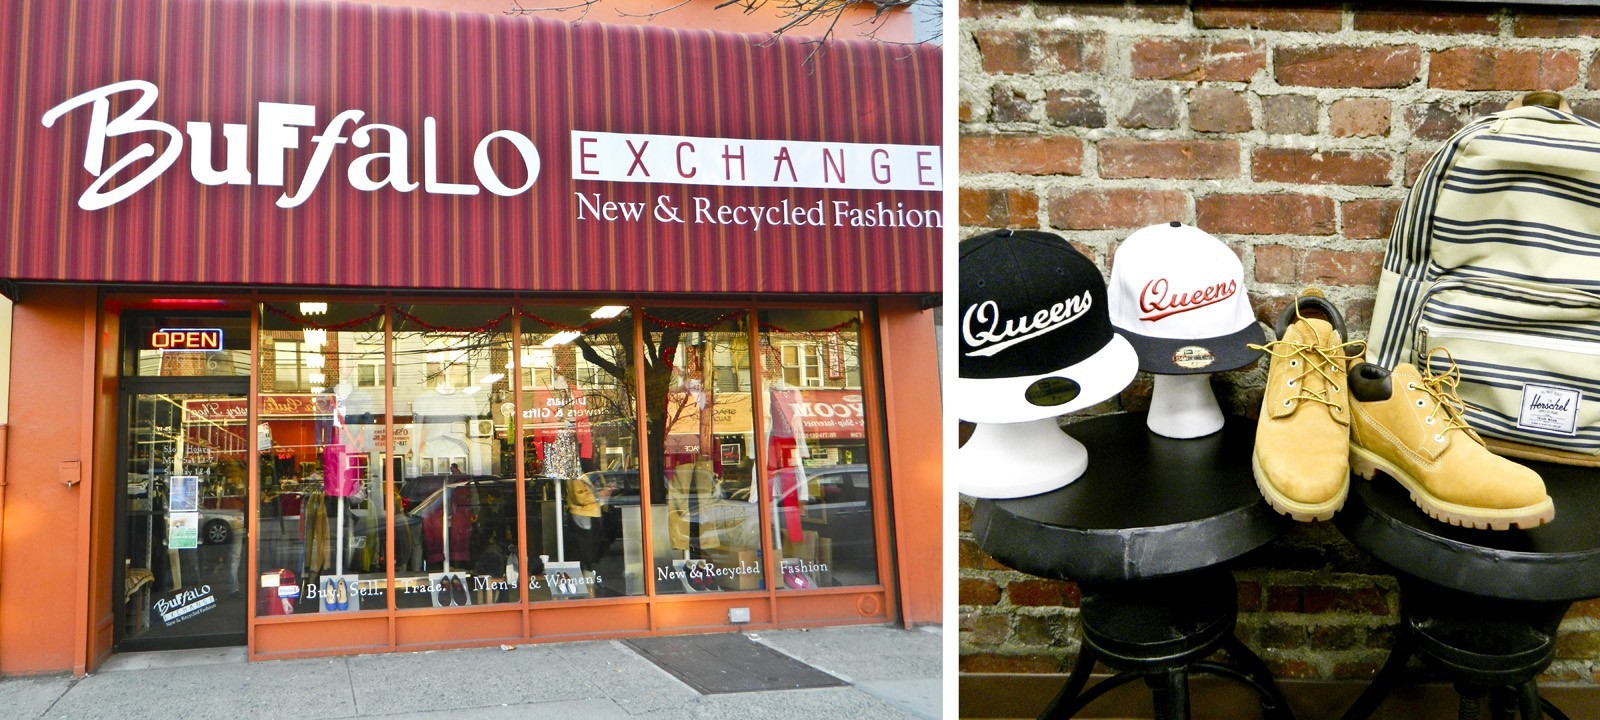 Cashier opening in new york ny buffalo exchange new for Fashion jobs hamburg